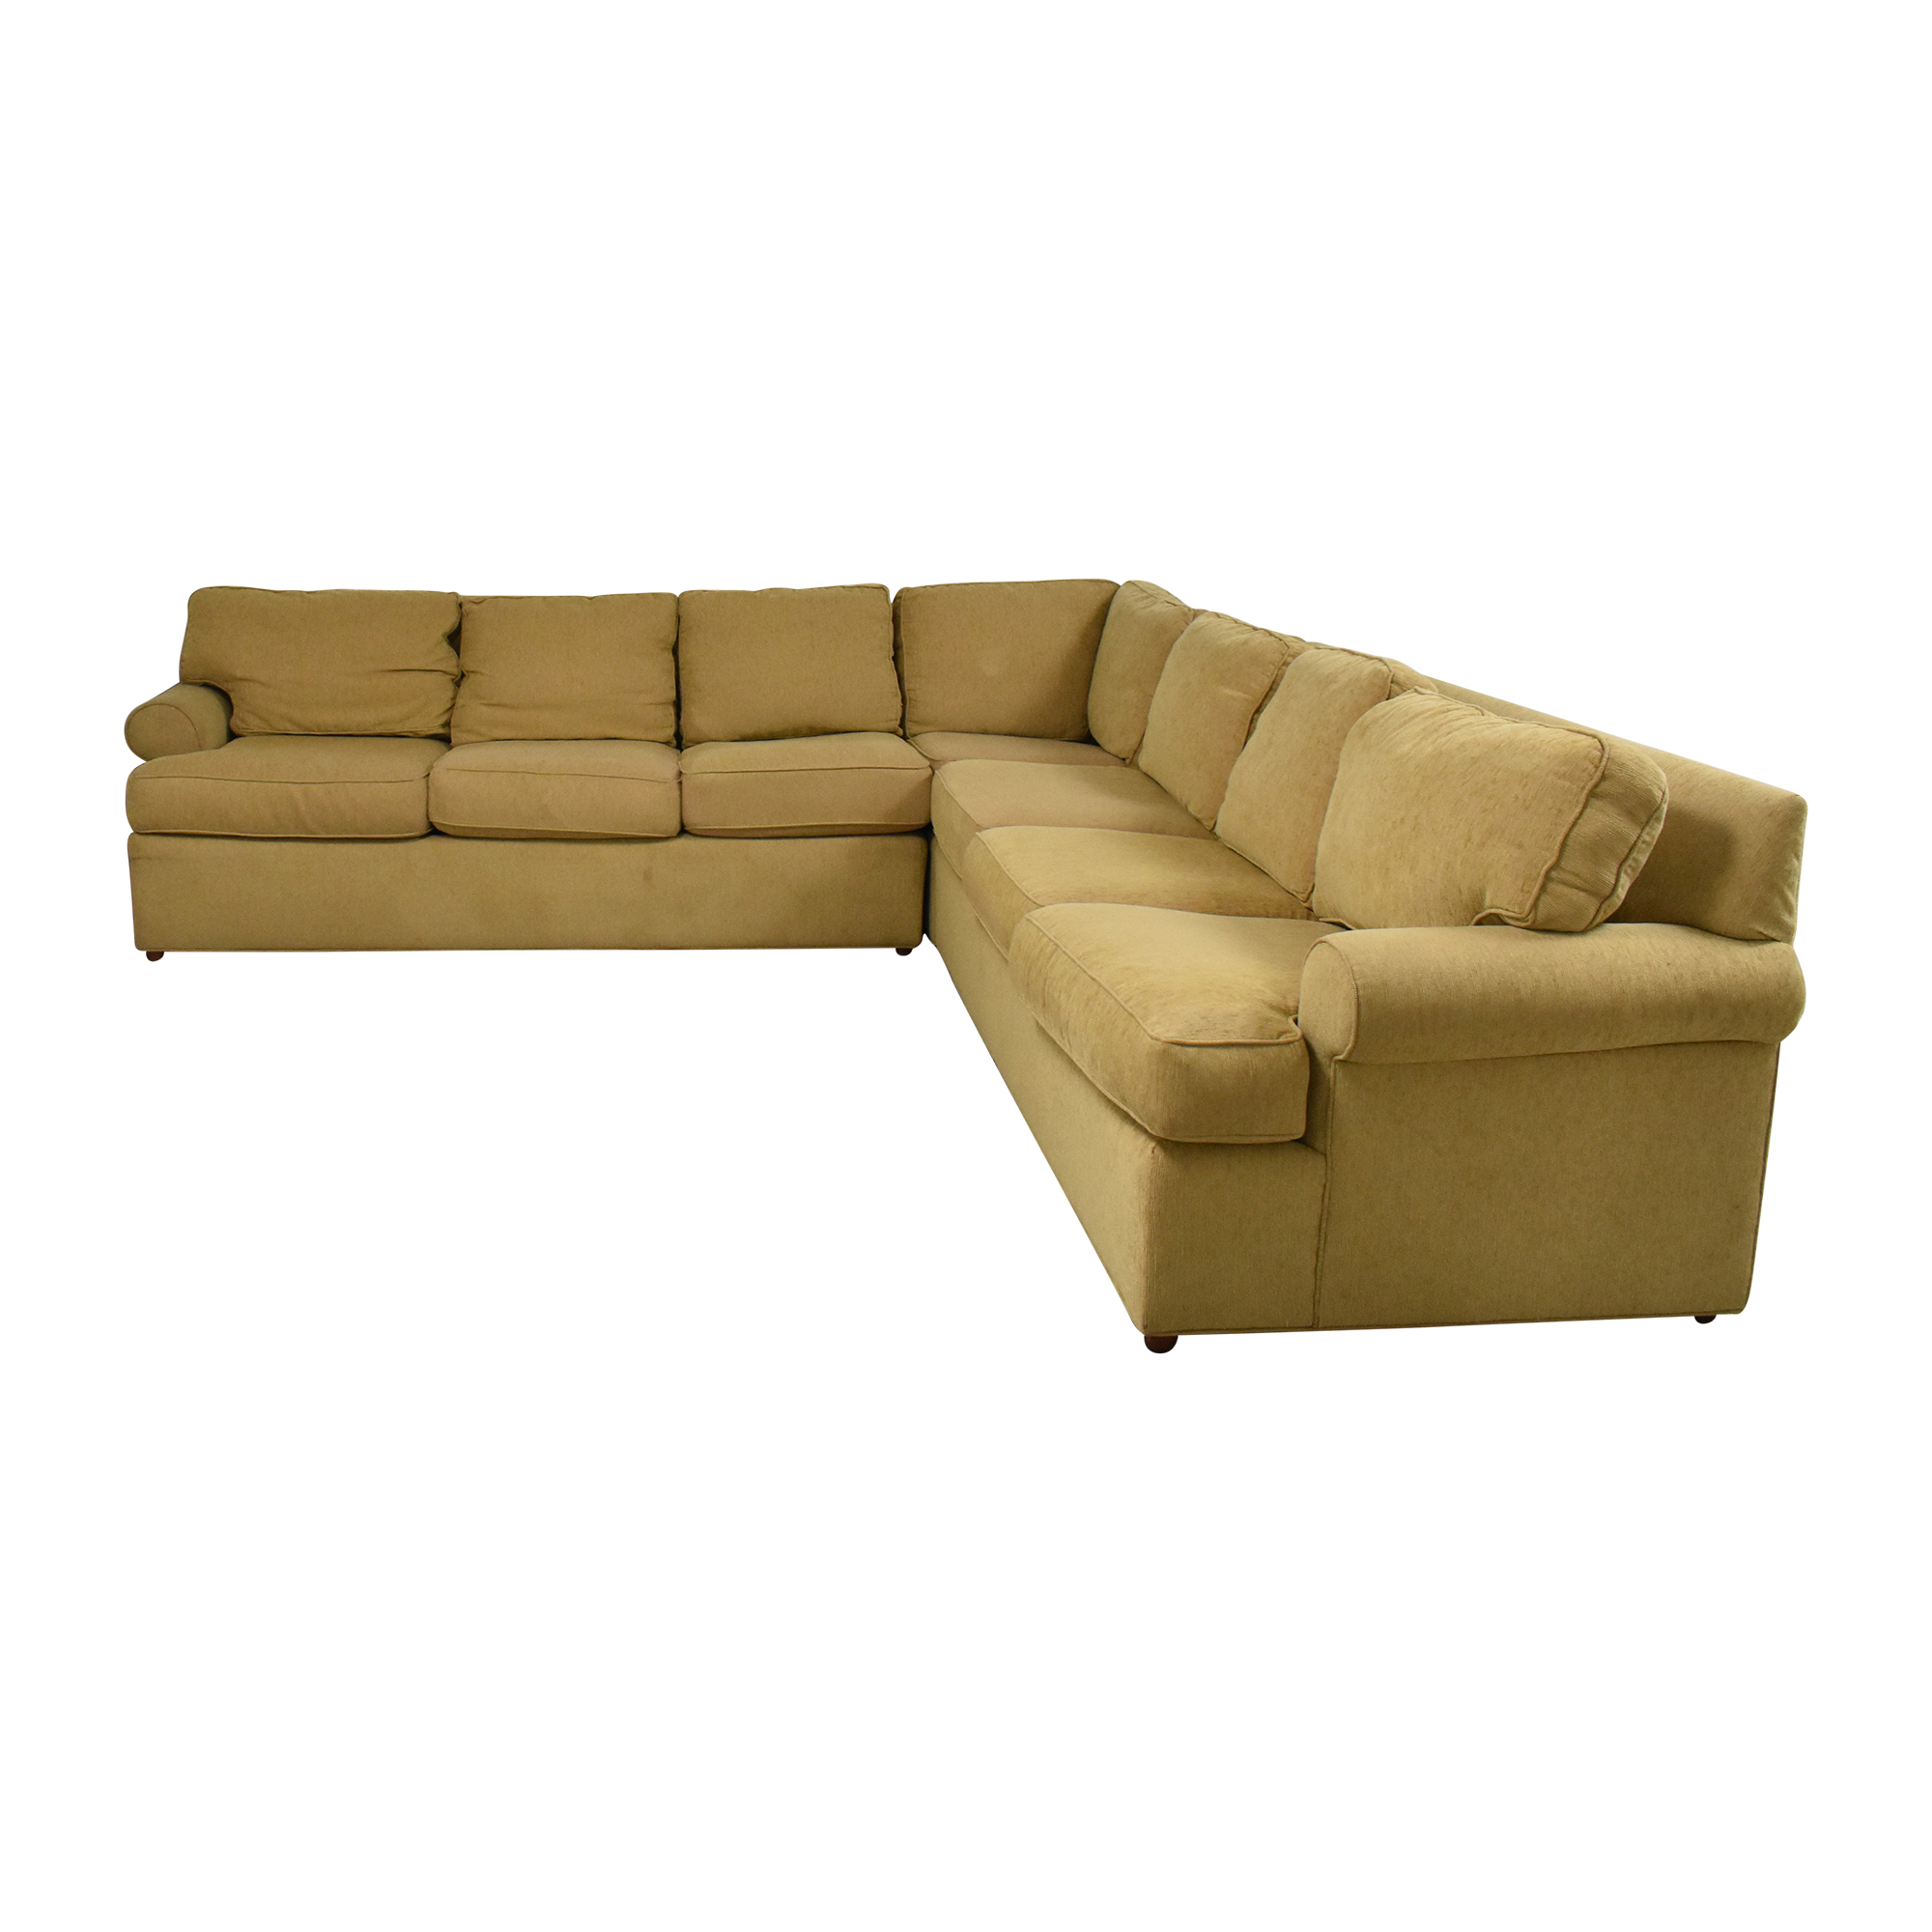 Ethan Allen Ethan Allen Roll Arm Sectional Sofa nj